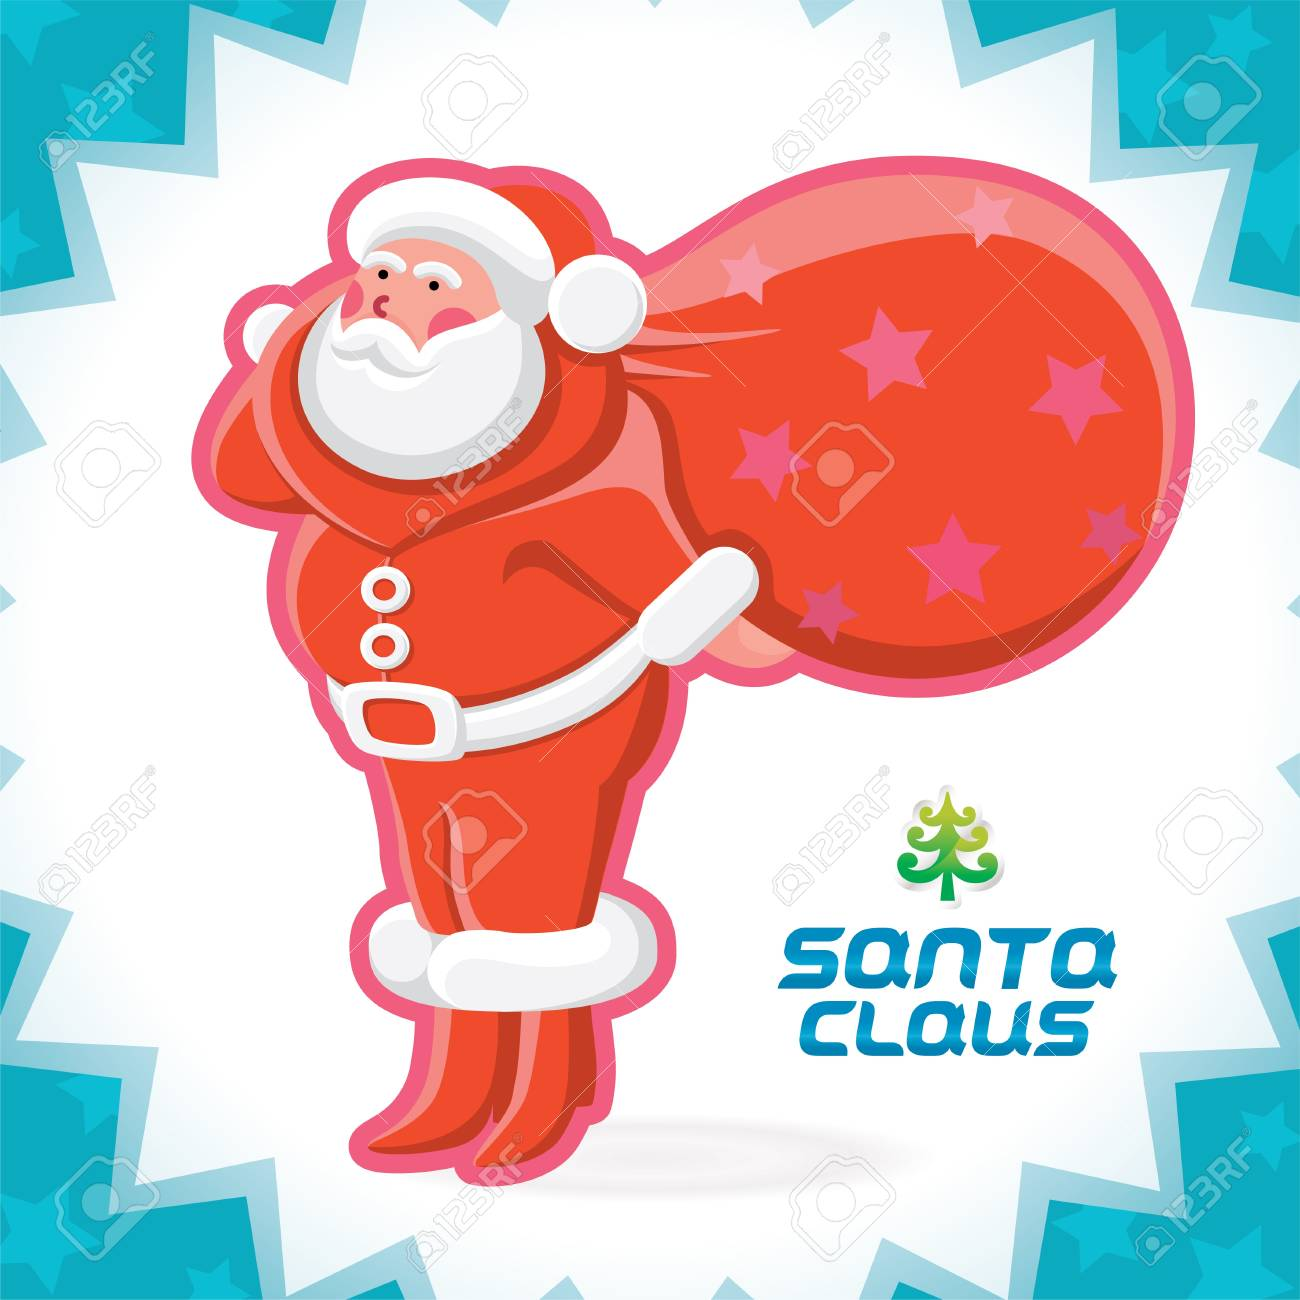 Glossy Santa Claus Merry Christmas, New Year Illustration, Icons, Button, Sign, Symbol for Family, Festival Celebration, Baby, Children, Teenager, People Stock Vector - 16209883